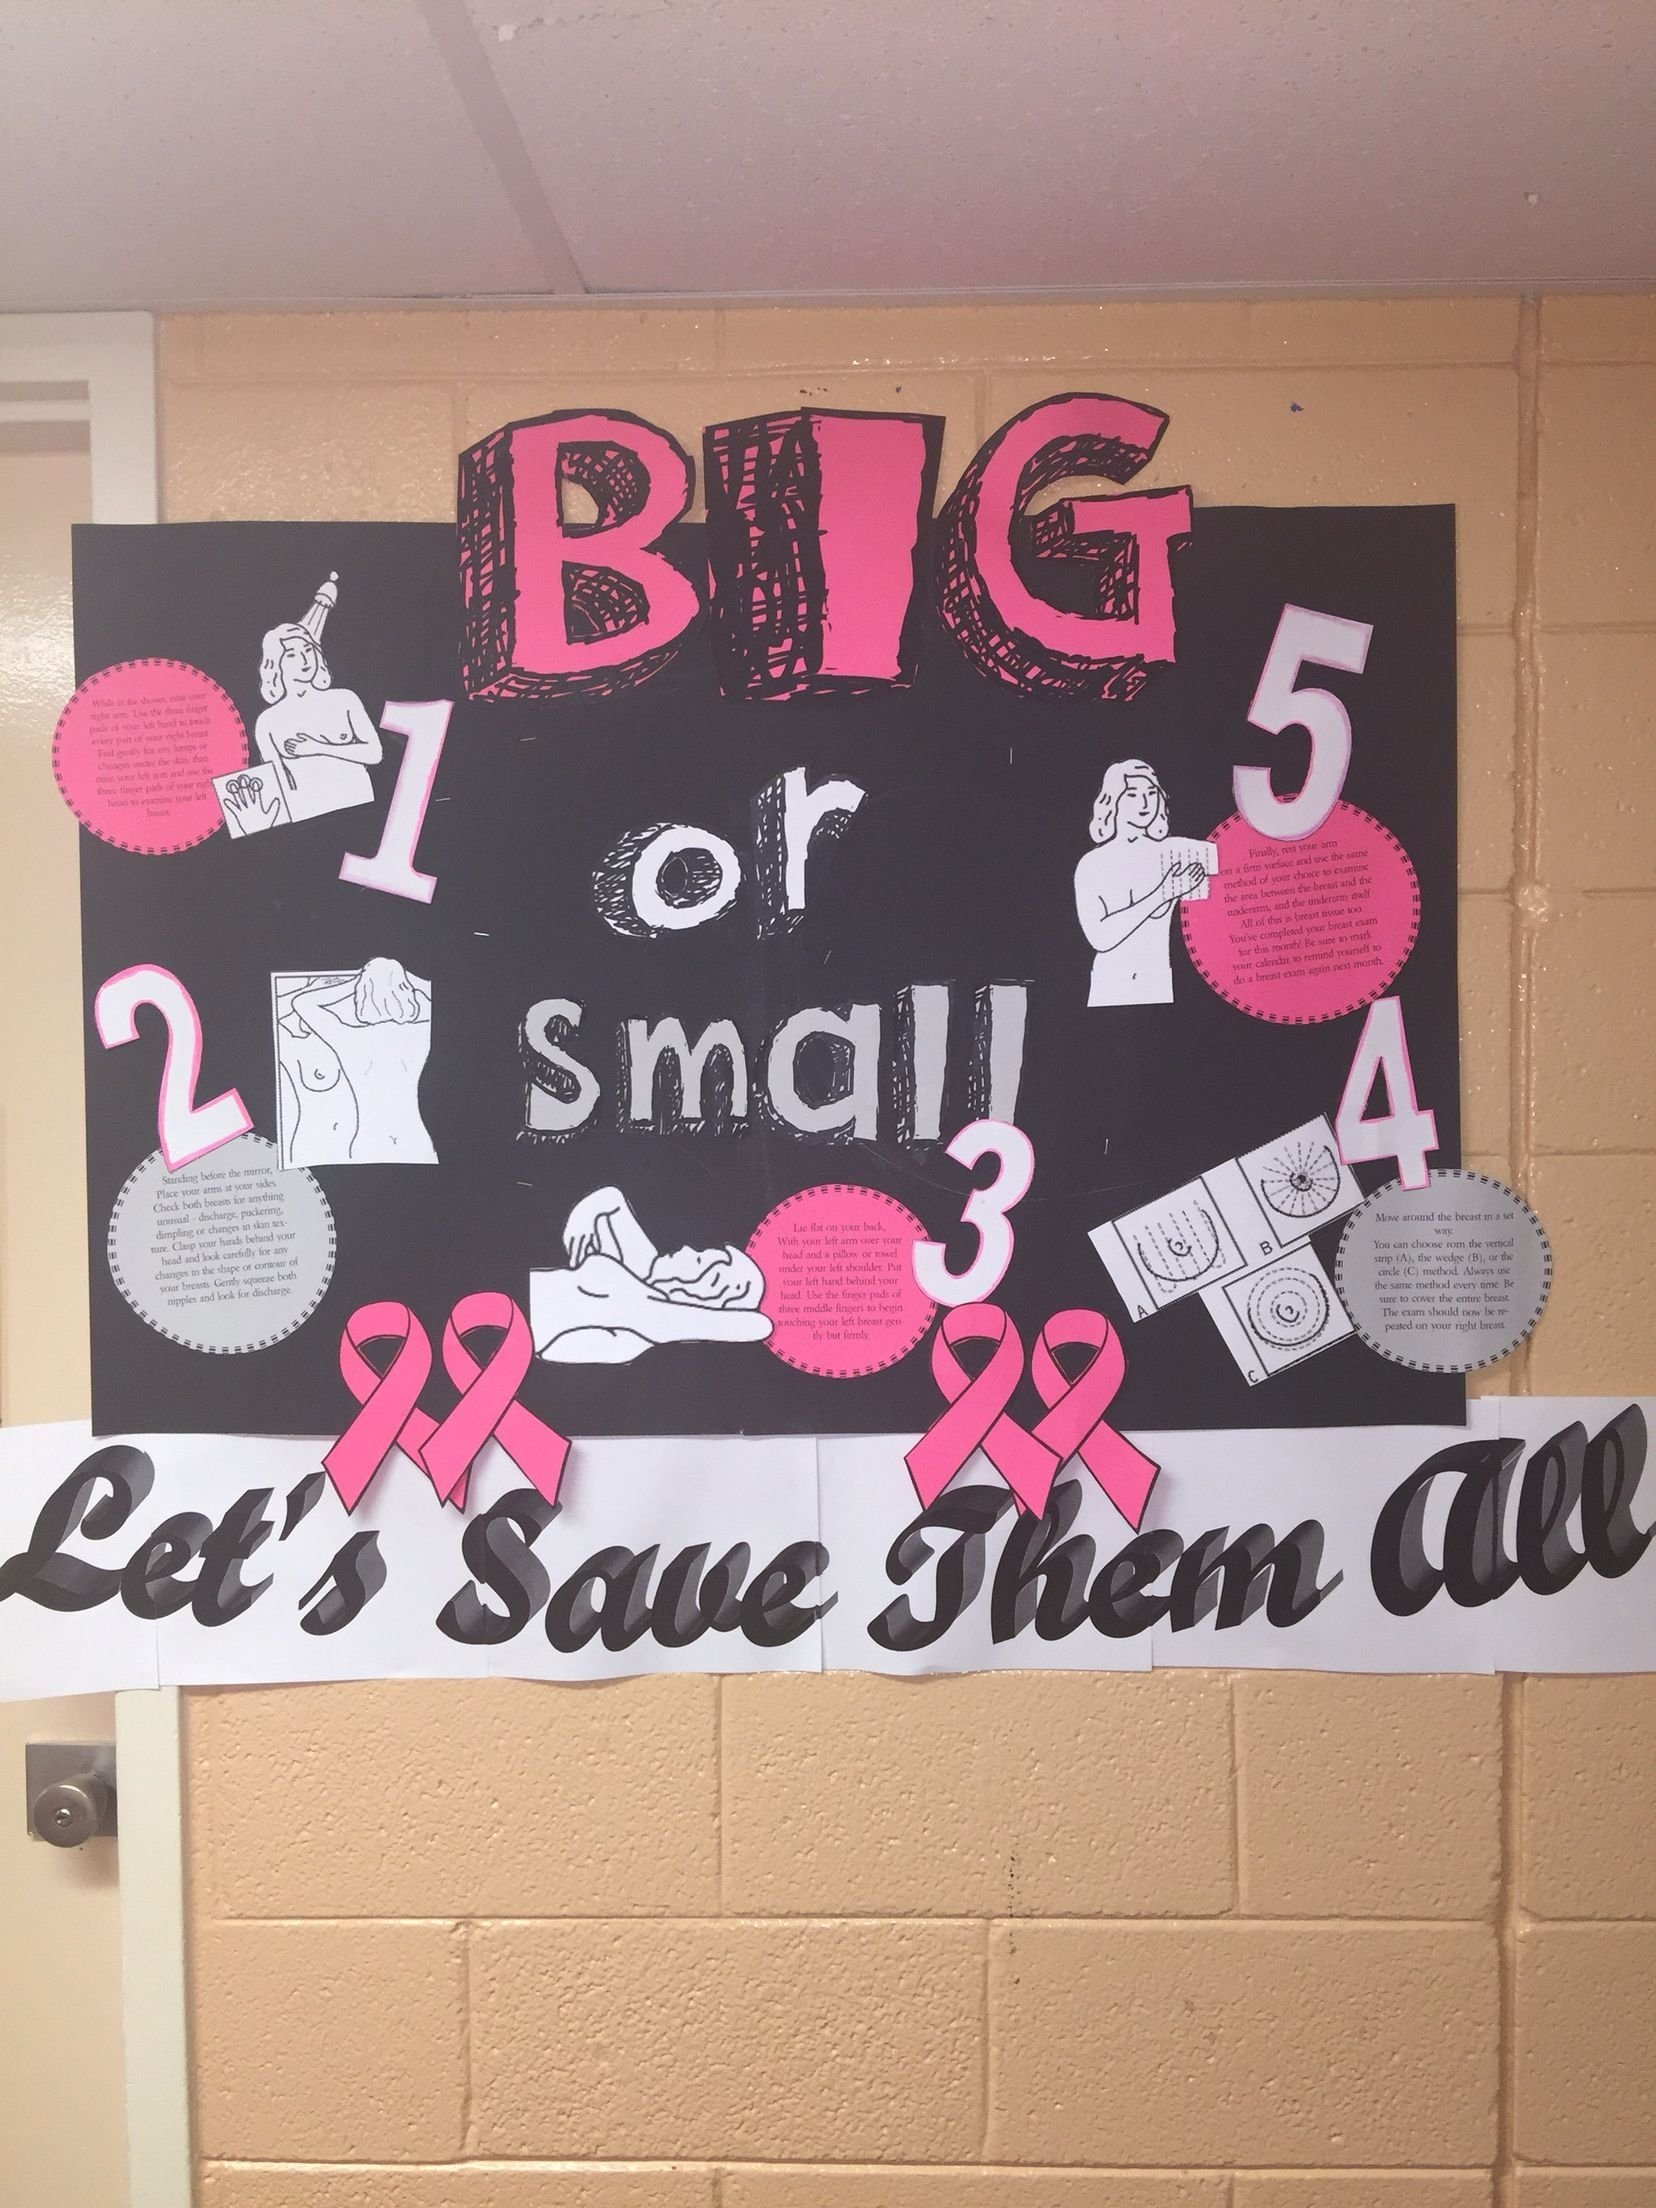 10 Stunning Breast Cancer Awareness Bulletin Board Ideas breast cancer awareness bulletin boards pinterest cancer 2021